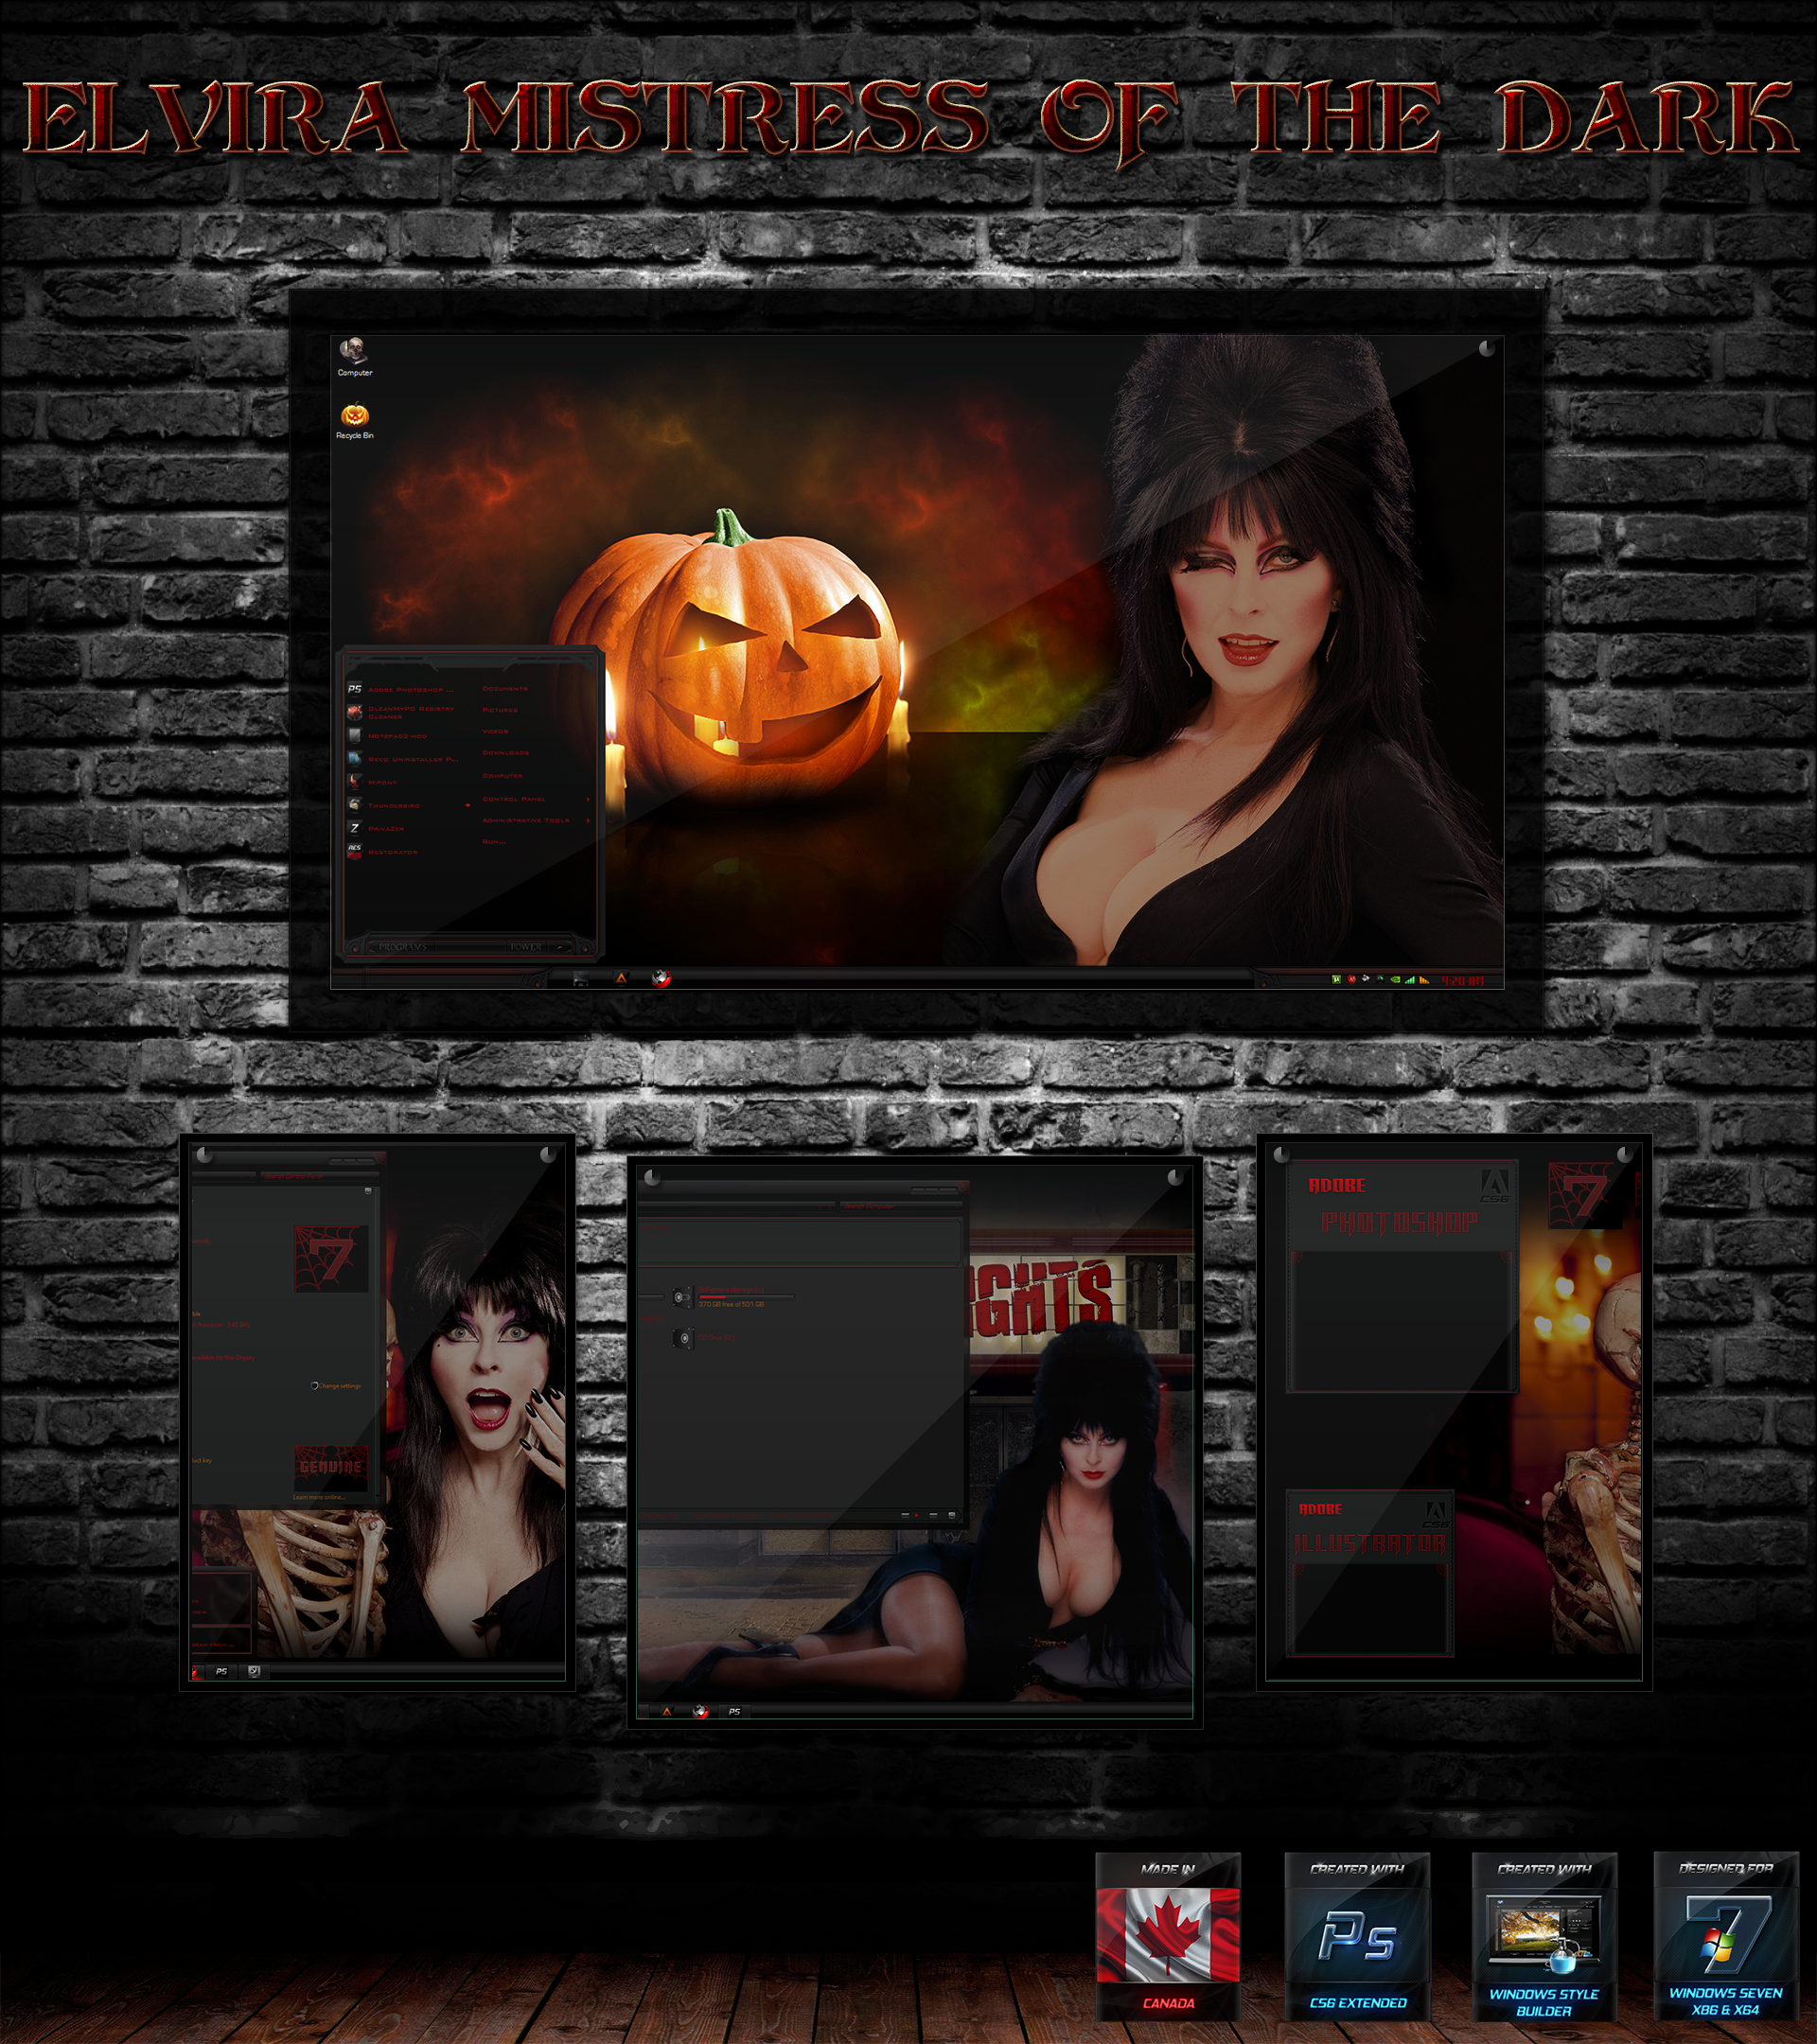 Elvira Mistress of the Dark by R0ck n R0lla1 1920x2160